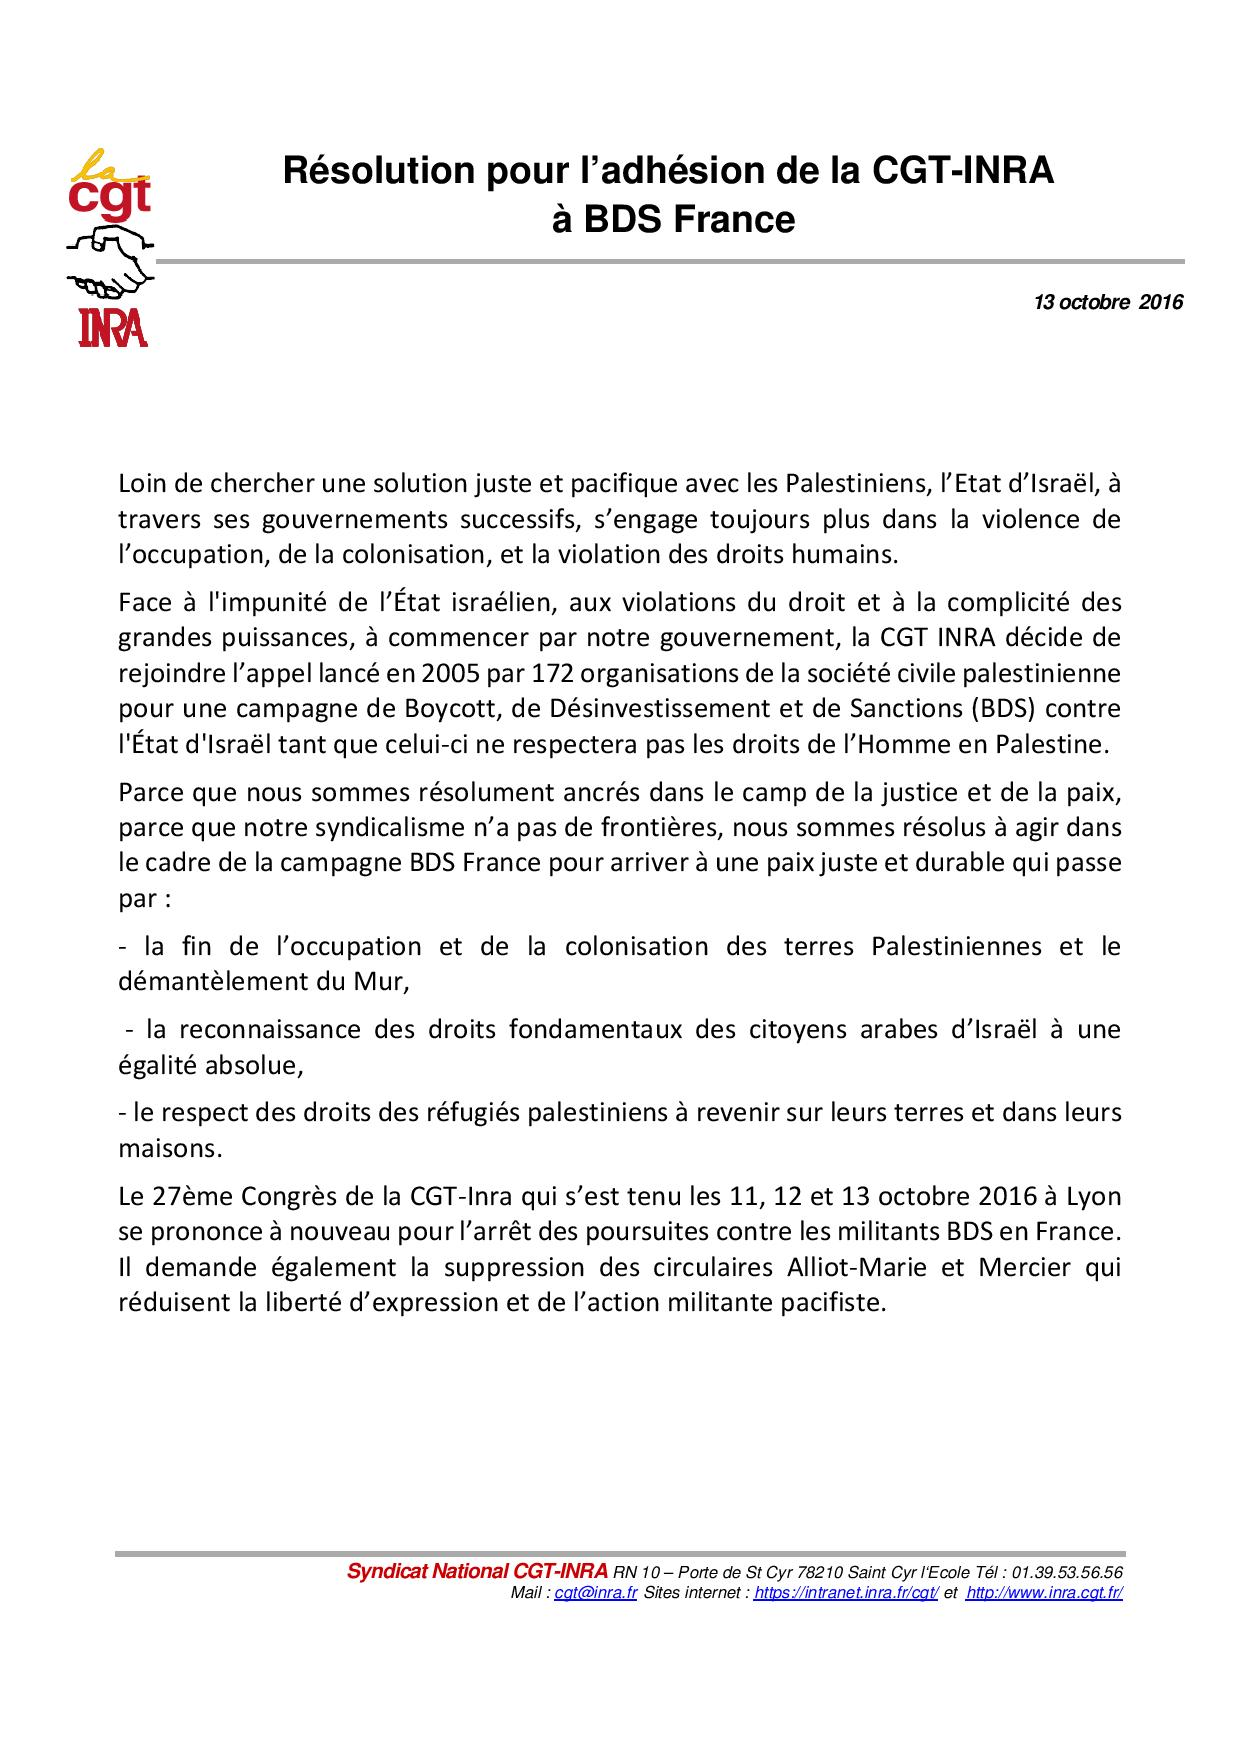 bds-france-cgt-inra-1-page-001